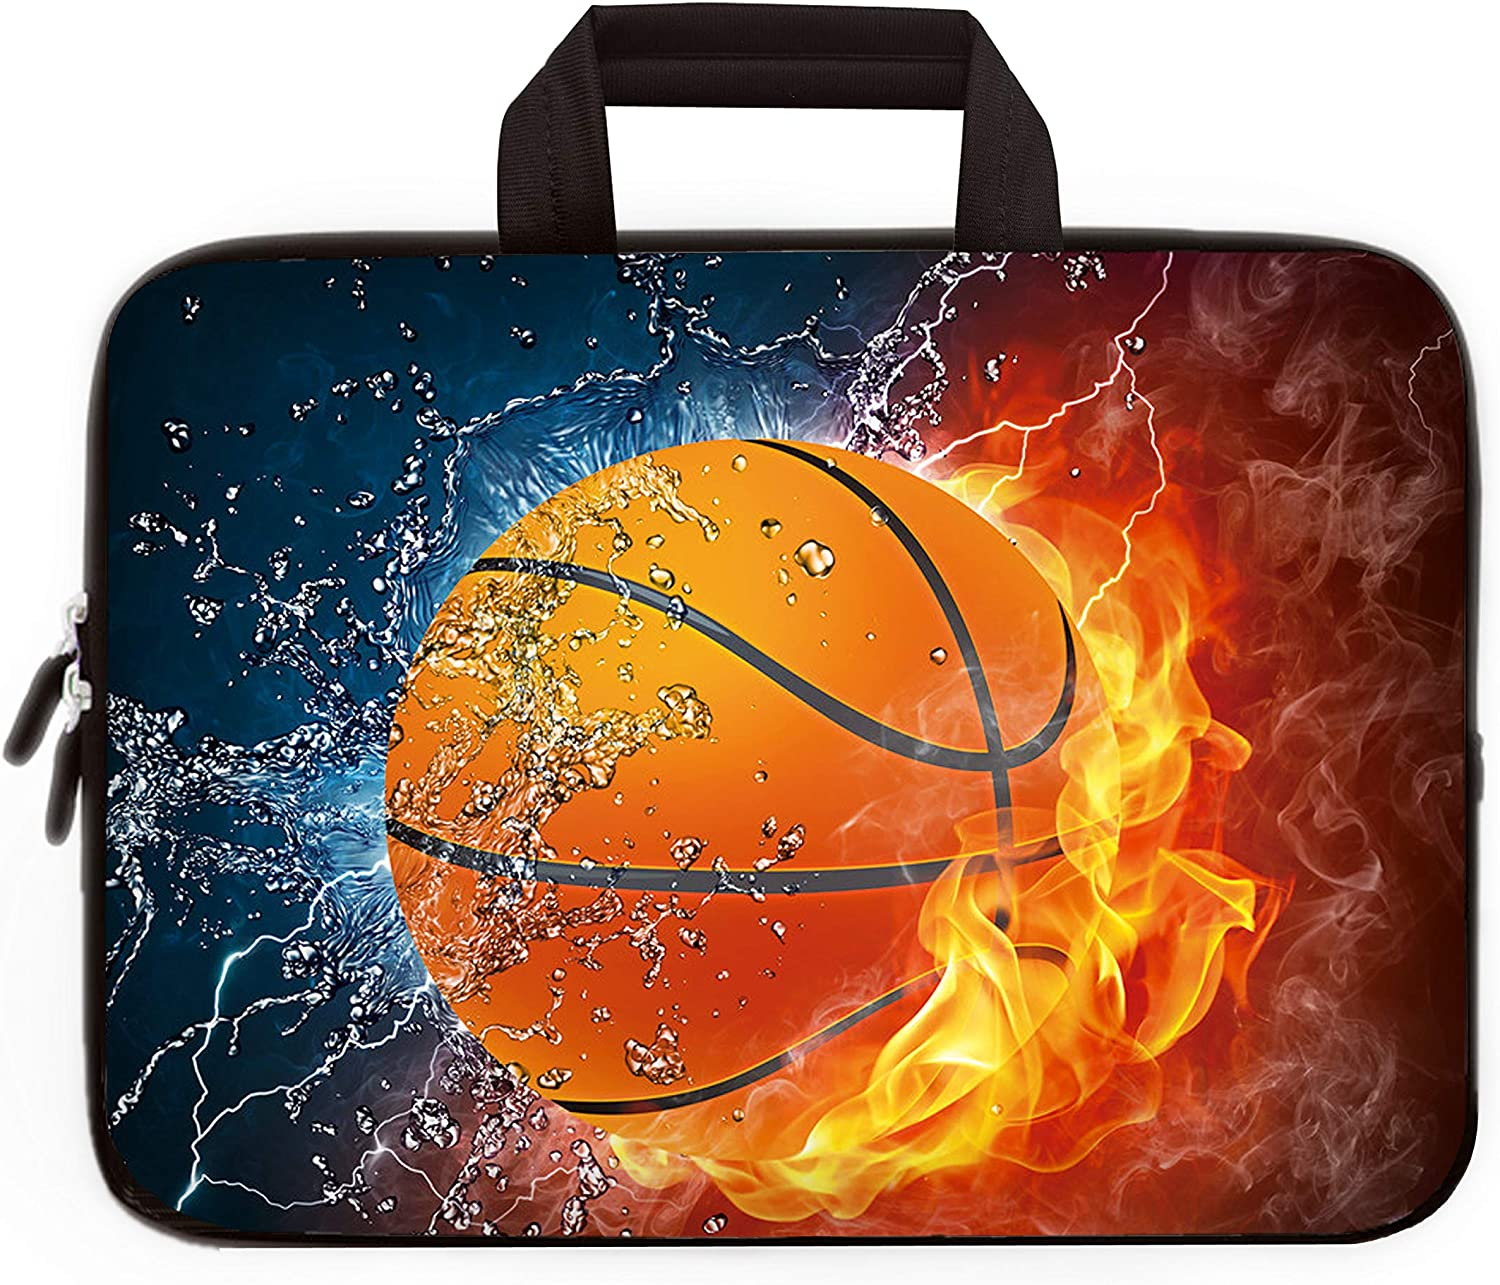 14 15 15.4 15.6 inch Laptop Handle Bag Computer Protect Case Pouch Holder Notebook Sleeve Neoprene Cover Soft Carrying Travel Case for Dell Lenovo Toshiba HP Chromebook ASUS Acer (Cool Basketball)